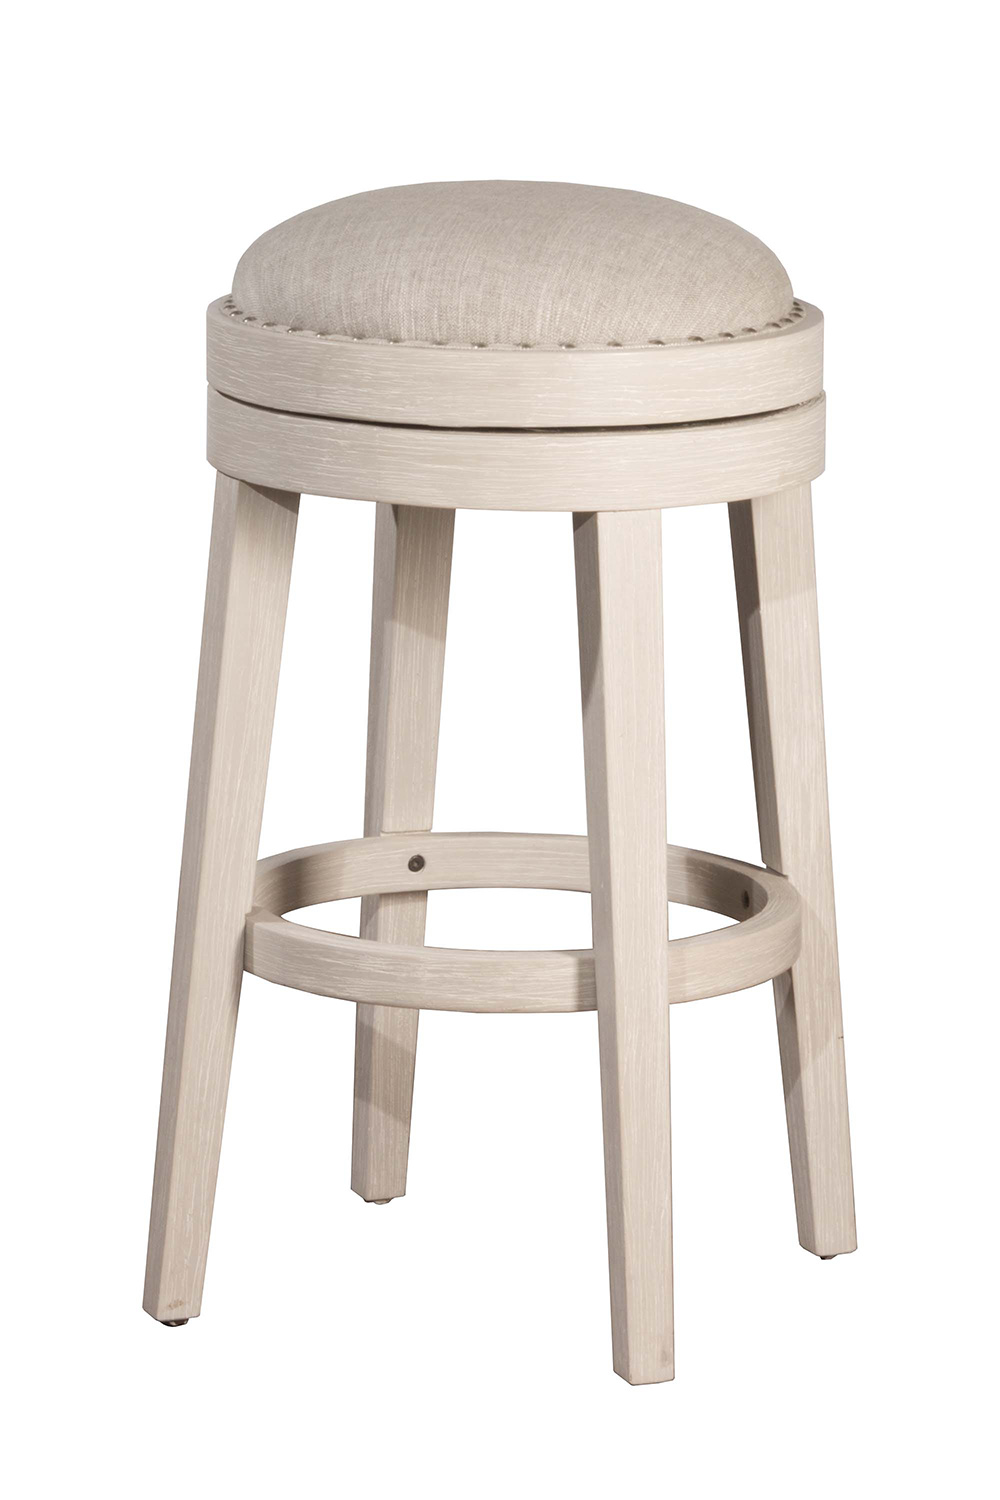 Hillsdale Carlito Backless Swivel Counter Stool White Hd